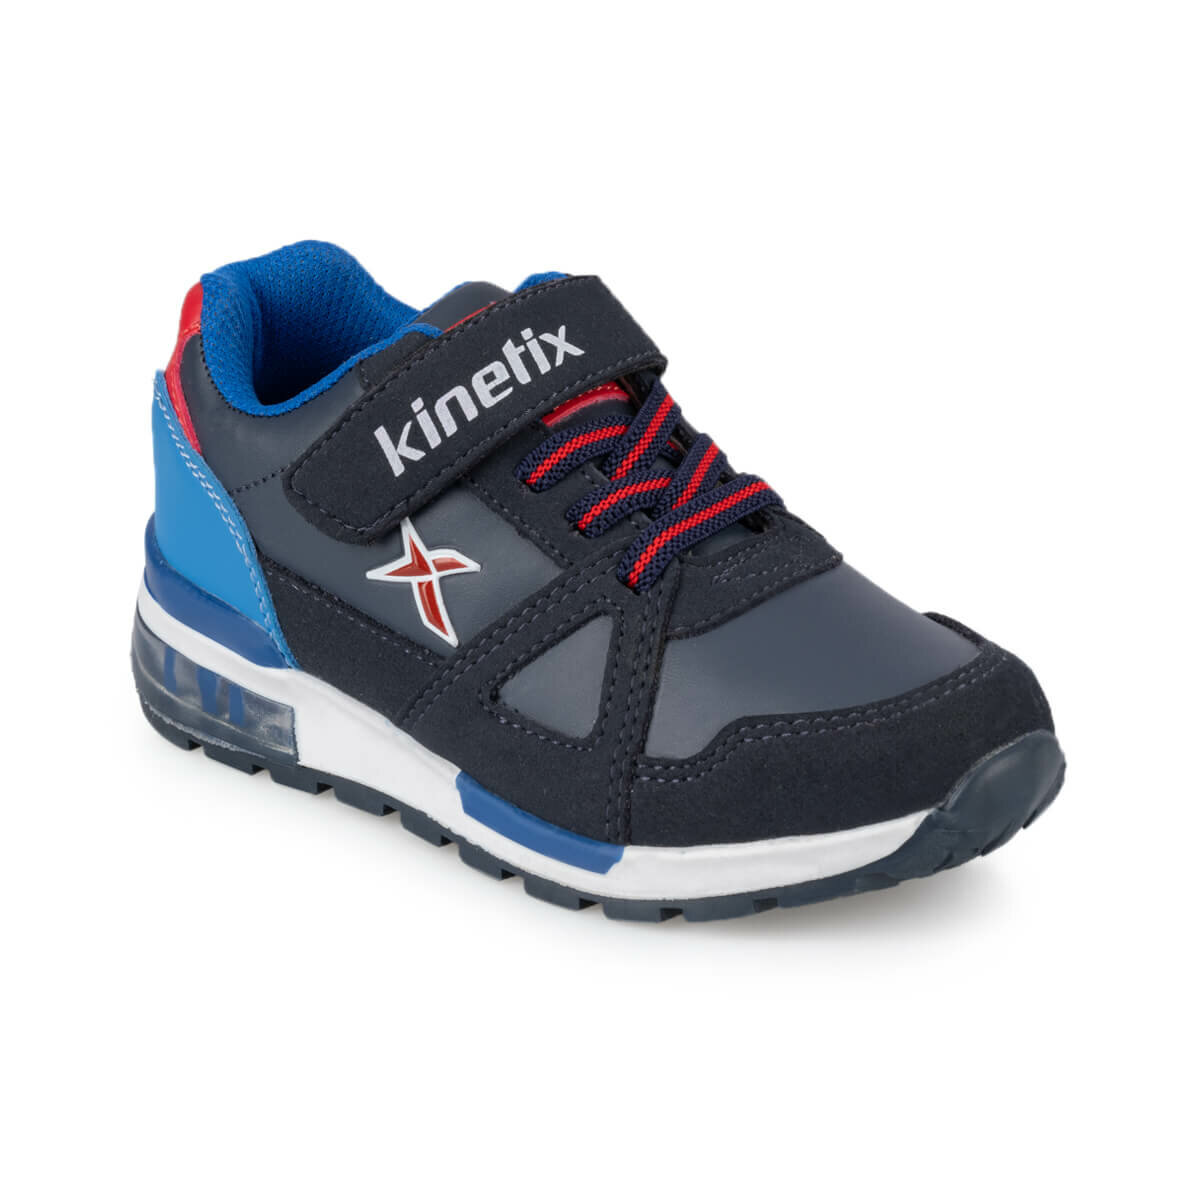 FLO RIVERO PU 9PR Navy Blue Male Child Sneaker Shoes KINETIX